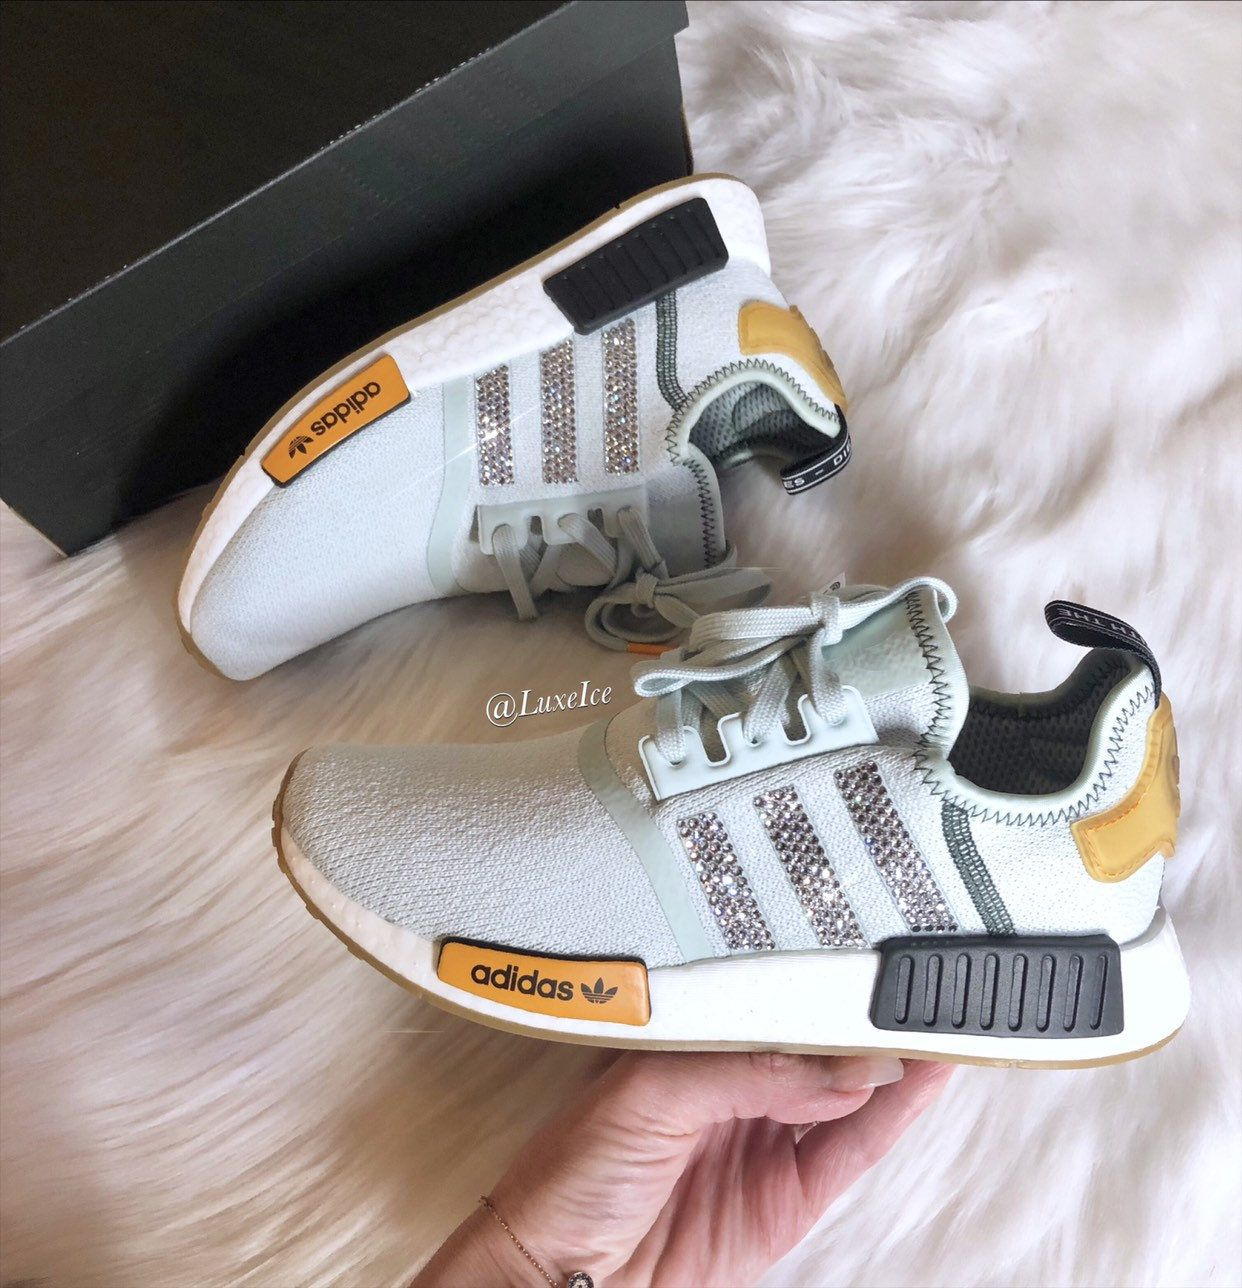 finest selection 4fce8 2b0ba Swarovski Adidas NMD Runner Casual Shoes Vapour Green Bright Gold  customized with Swarovski Crystals.